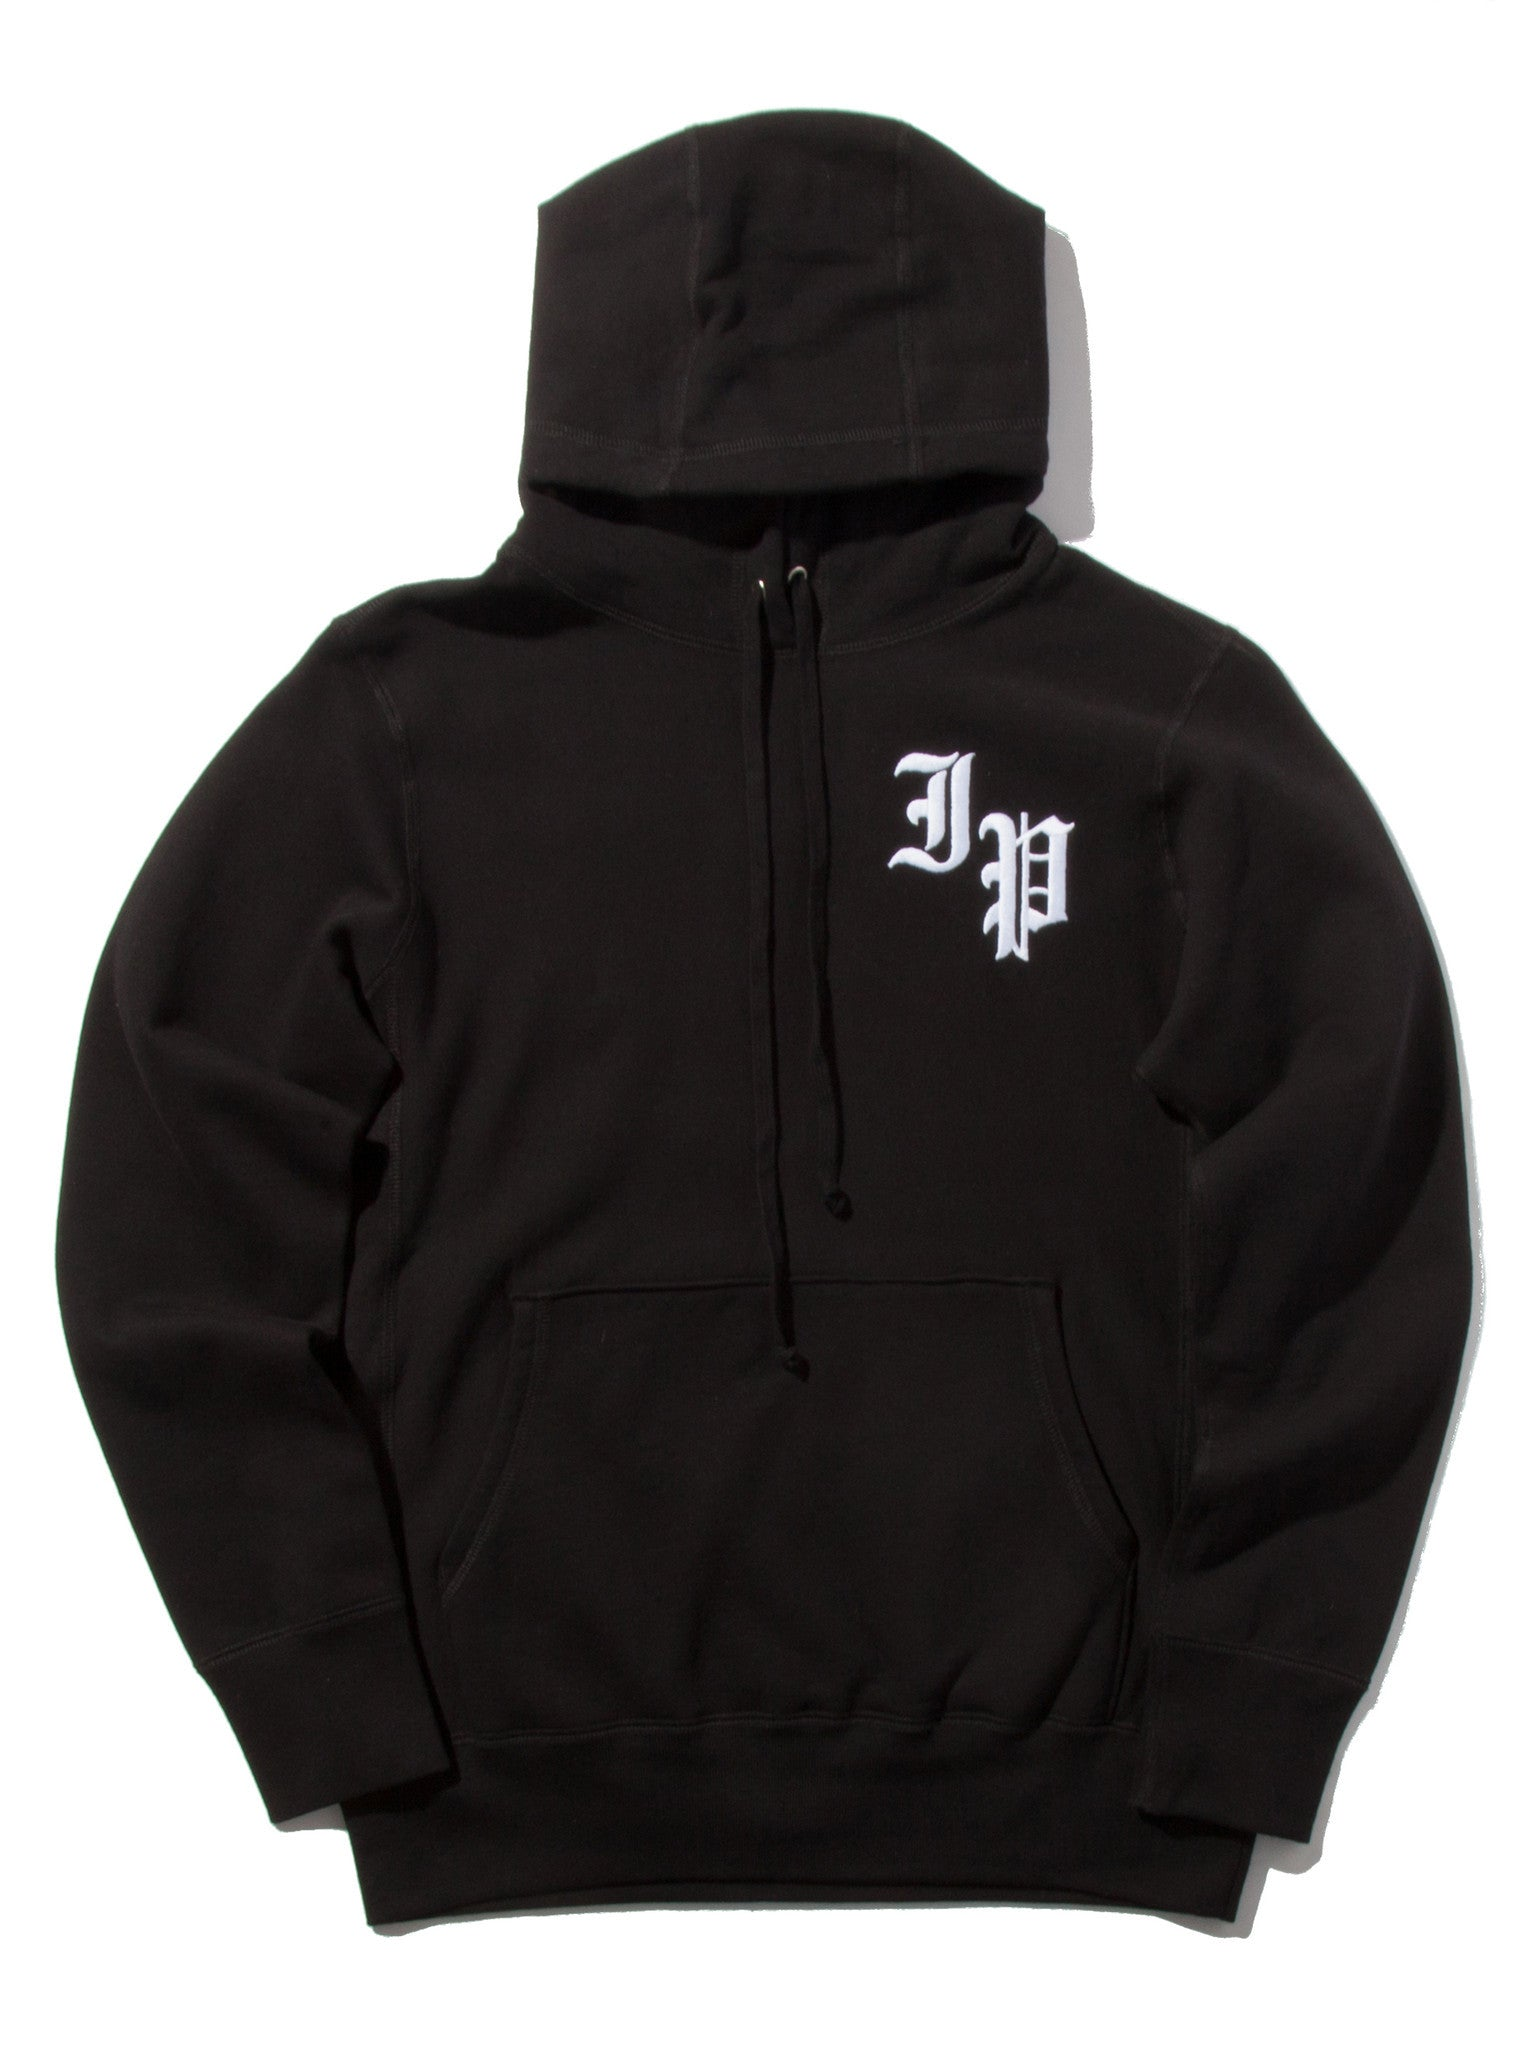 Black Slauson Pullover Hooded Sweatshirt 5